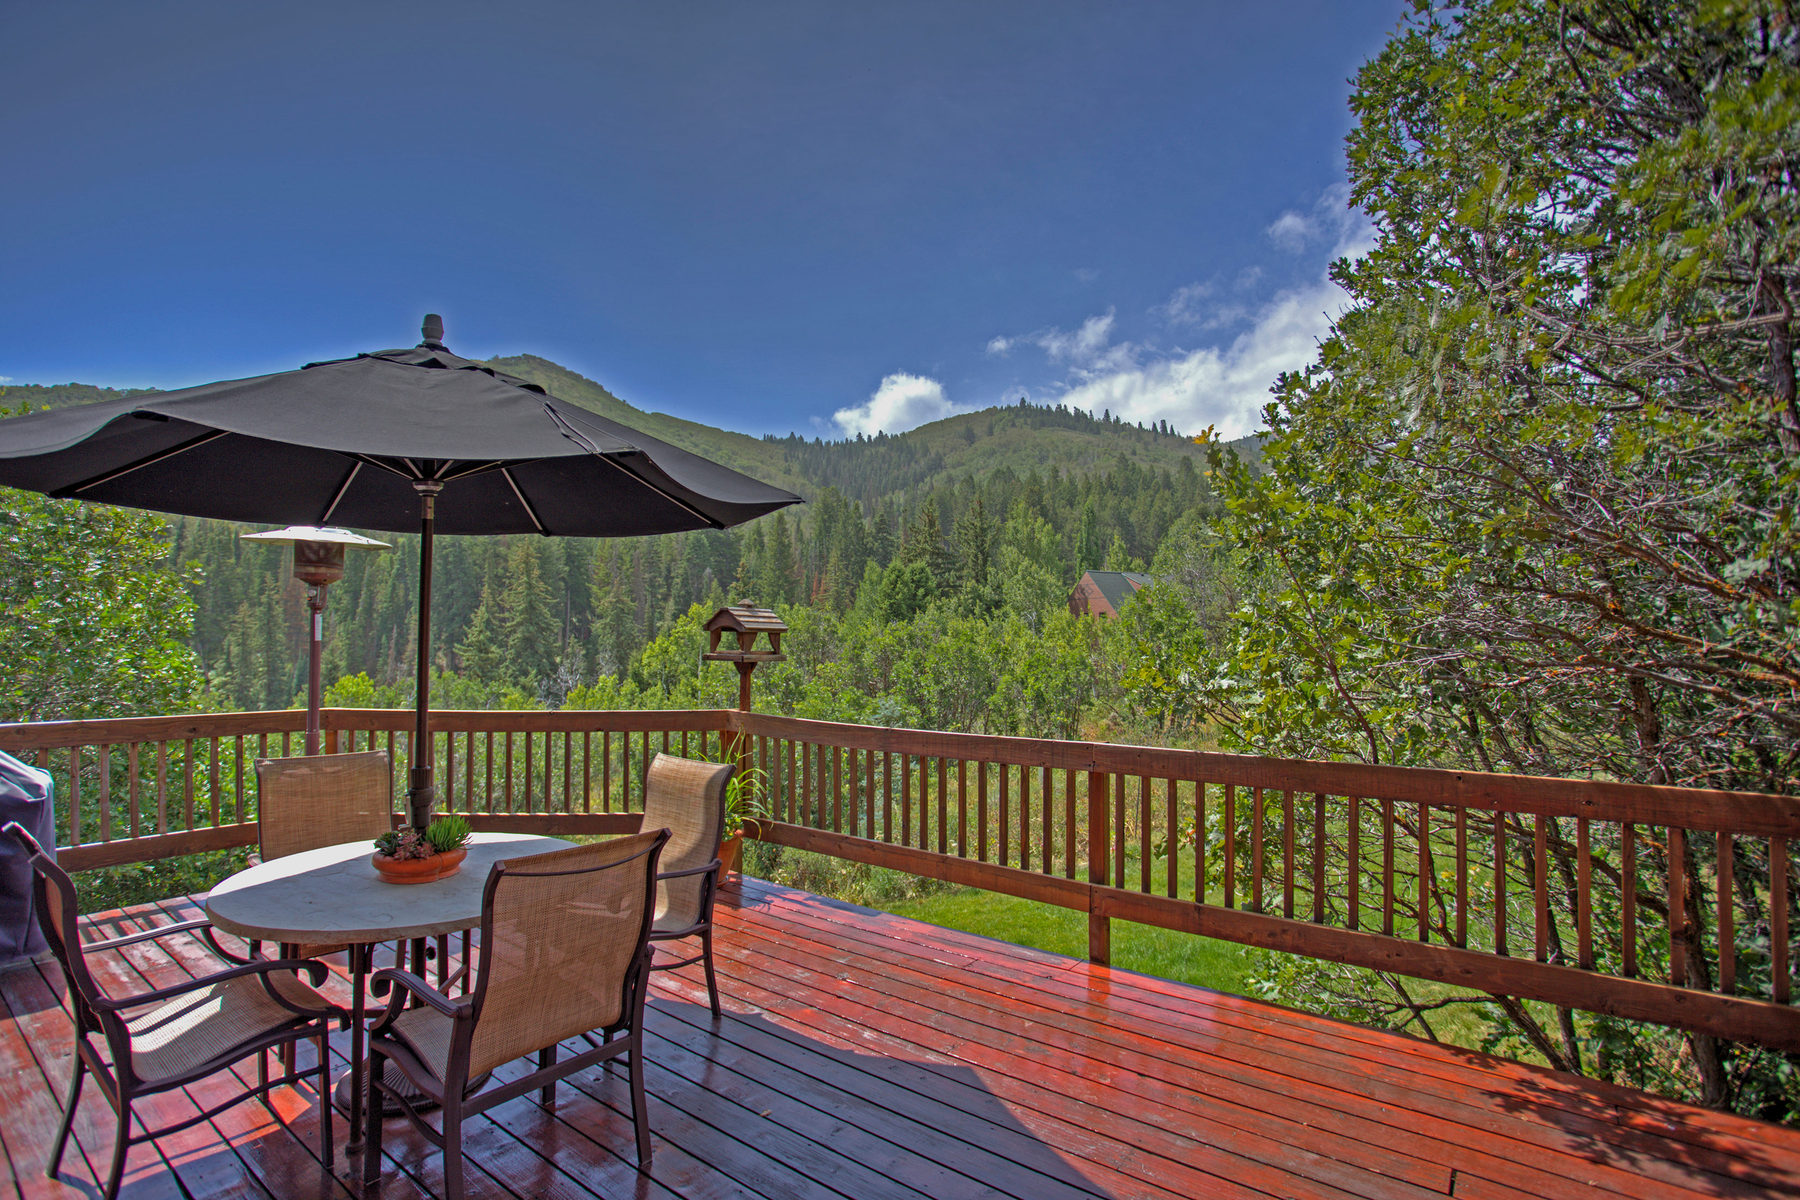 Single Family Home for Sale at Loft Style Home In The Trees 7219 N Buckboard Dr Park City, Utah 84098 United States